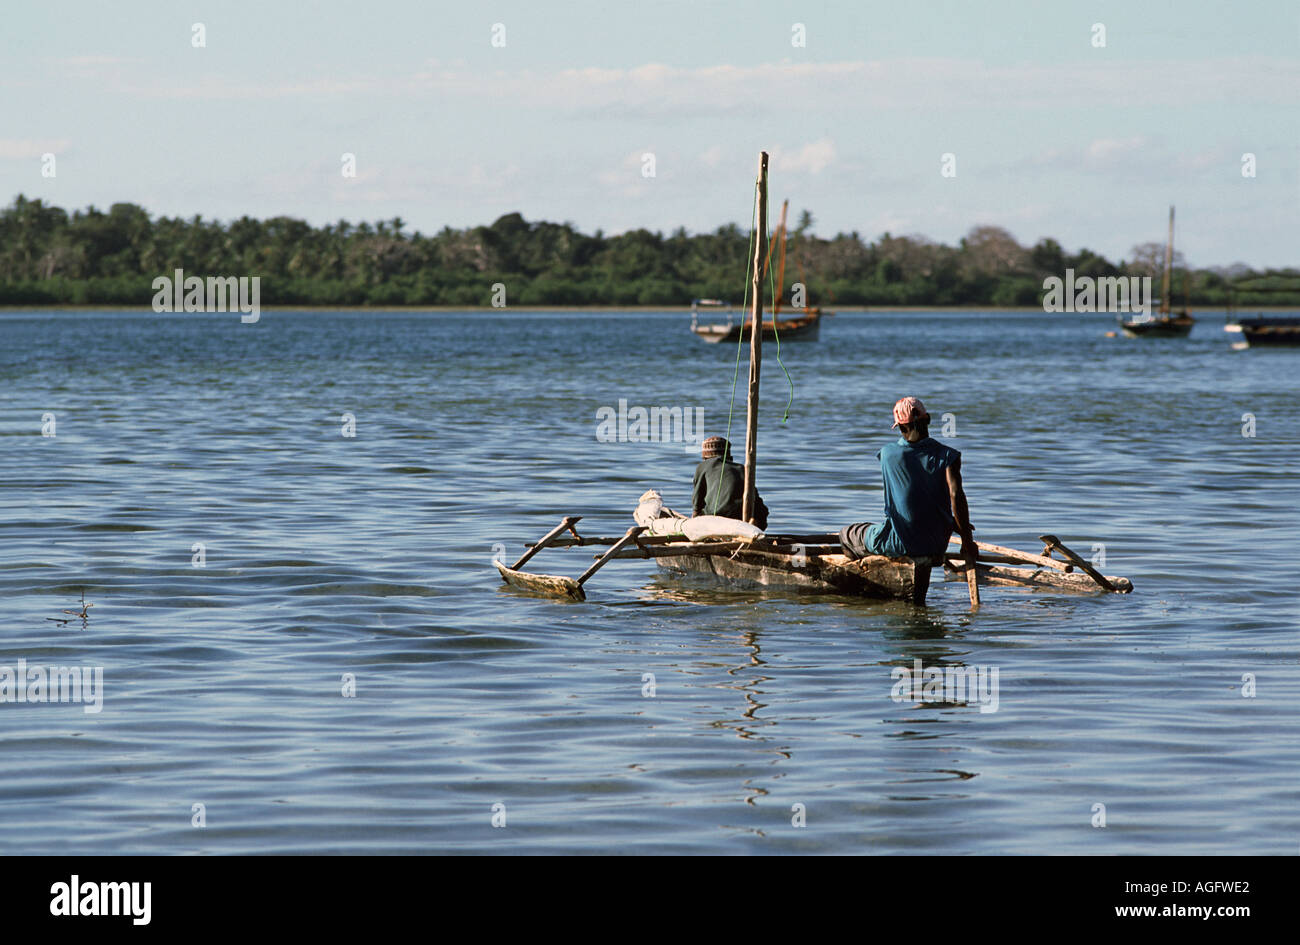 Fishermen set in their outrigger canoe into the straits between Mafia and Chole island Mafia lies in the Indian Ocean TANZANIA - Stock Image